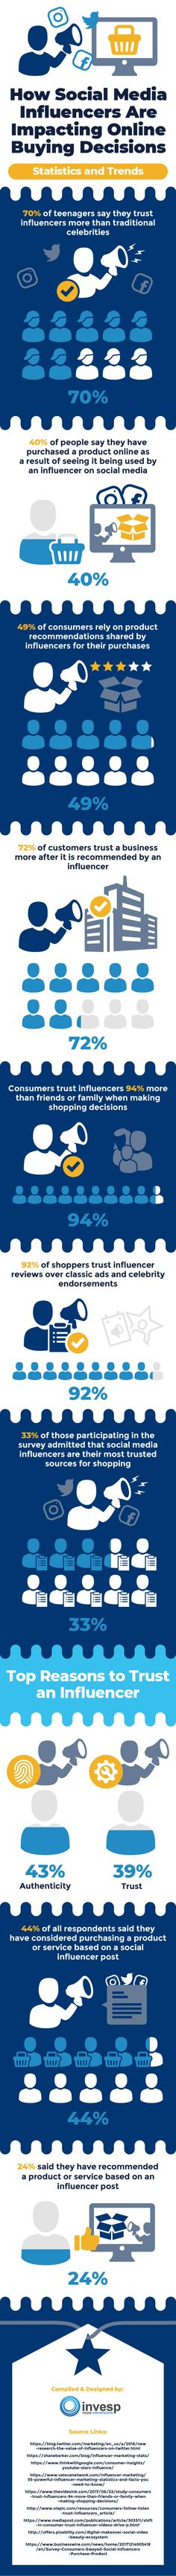 How Social Media Influencers Are Influencing Your Online Buying Decisions? [Infographic]